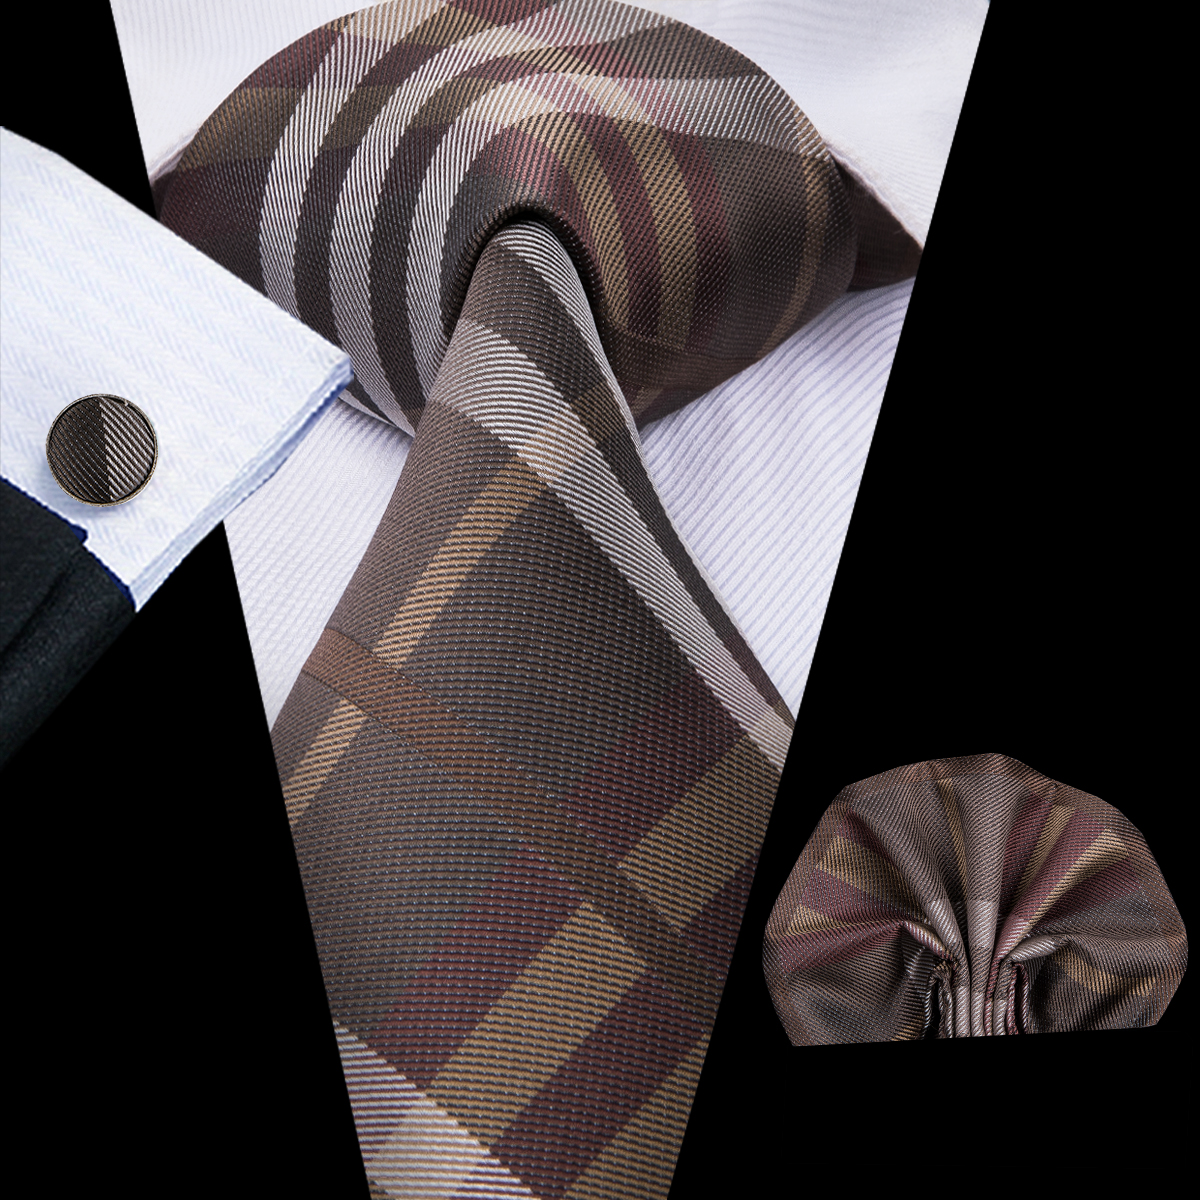 C-3014 Hi-Tie Men Tie Silk Necktie Plaid Brown Ties For Men High Quality Hanky Cufflinks Set Men's Wedding Pocket Square Tie Set